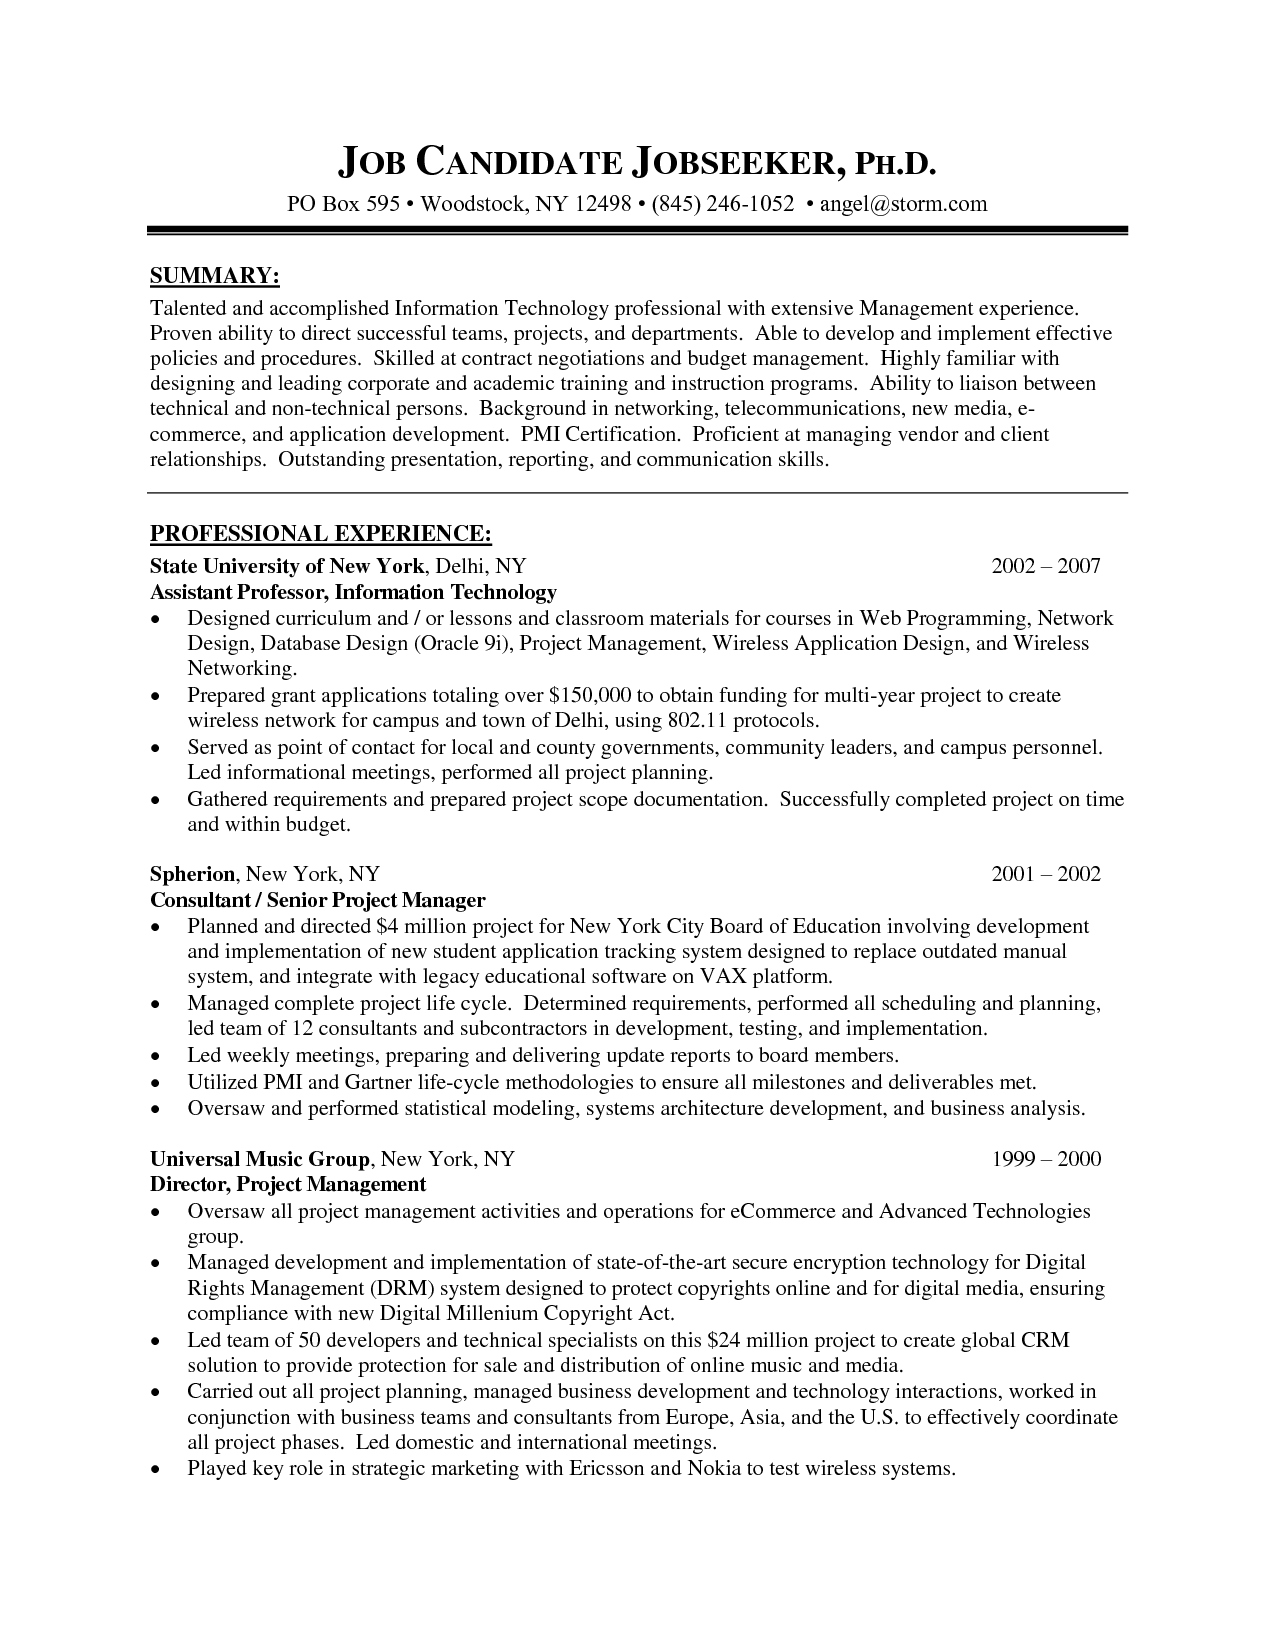 manager resume free sample senior project with summary examples compare  writing services find local